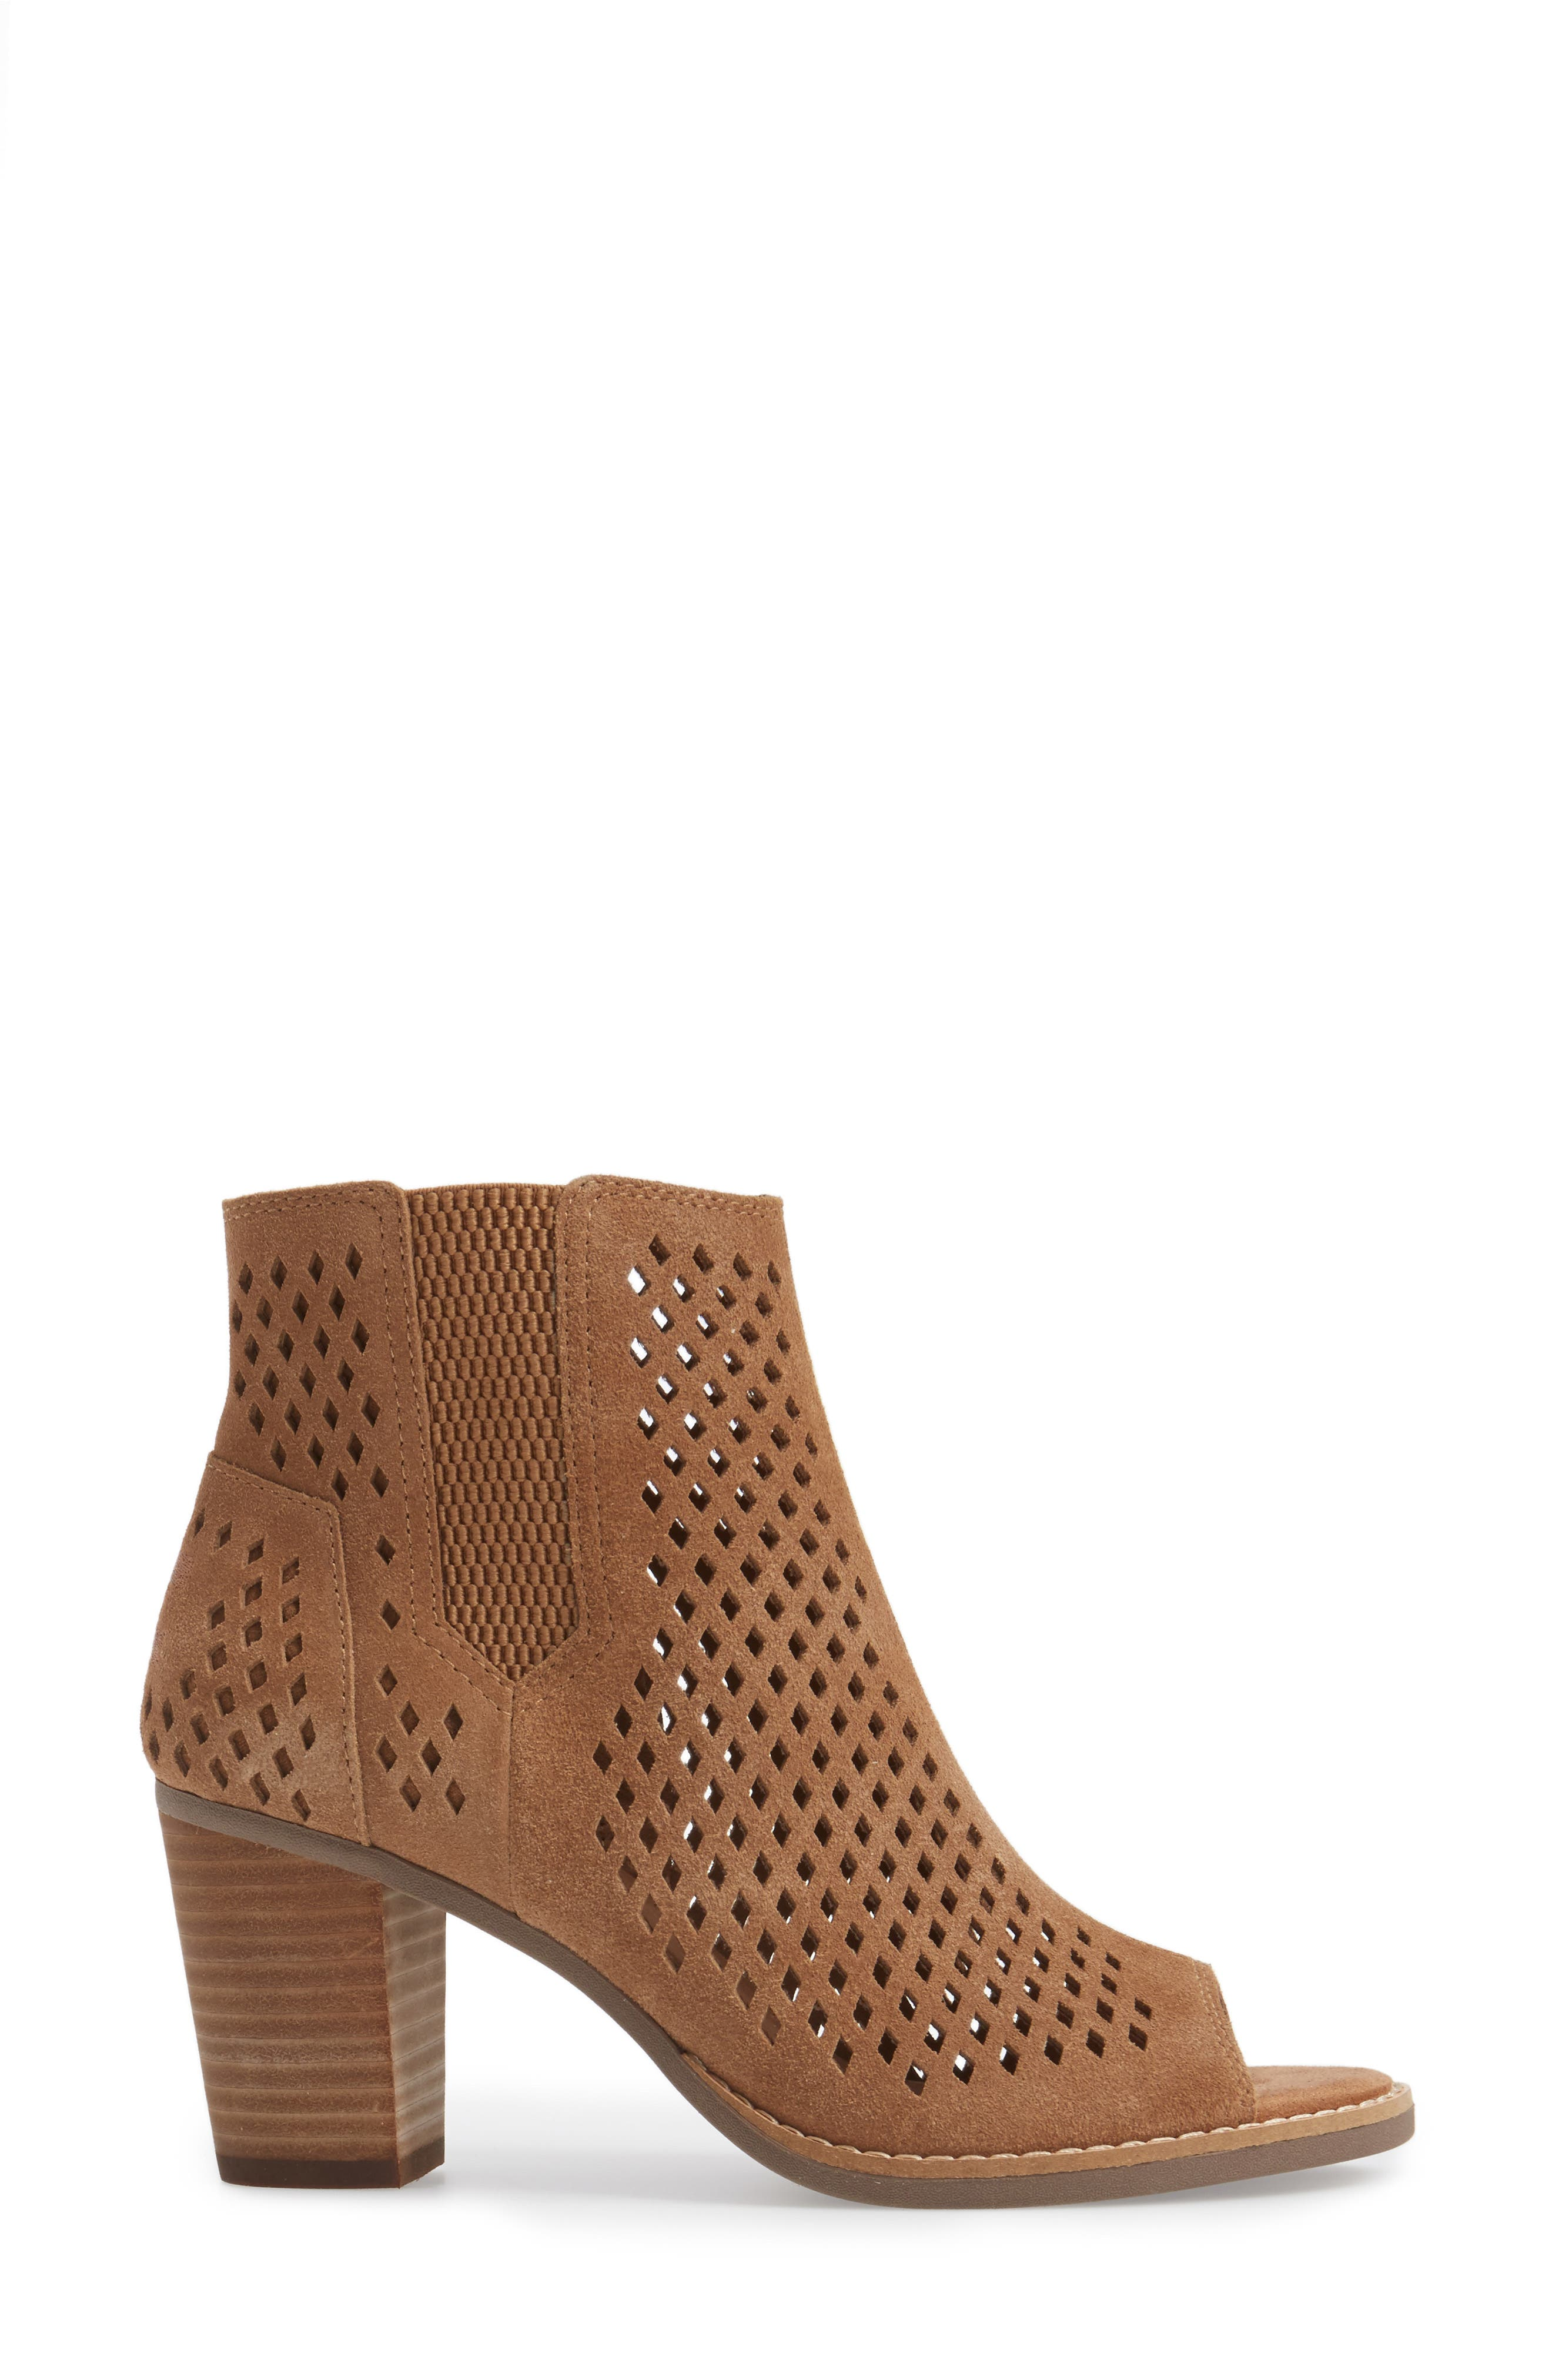 Majorca Peep Toe Bootie,                             Alternate thumbnail 4, color,                             Toffee Suede